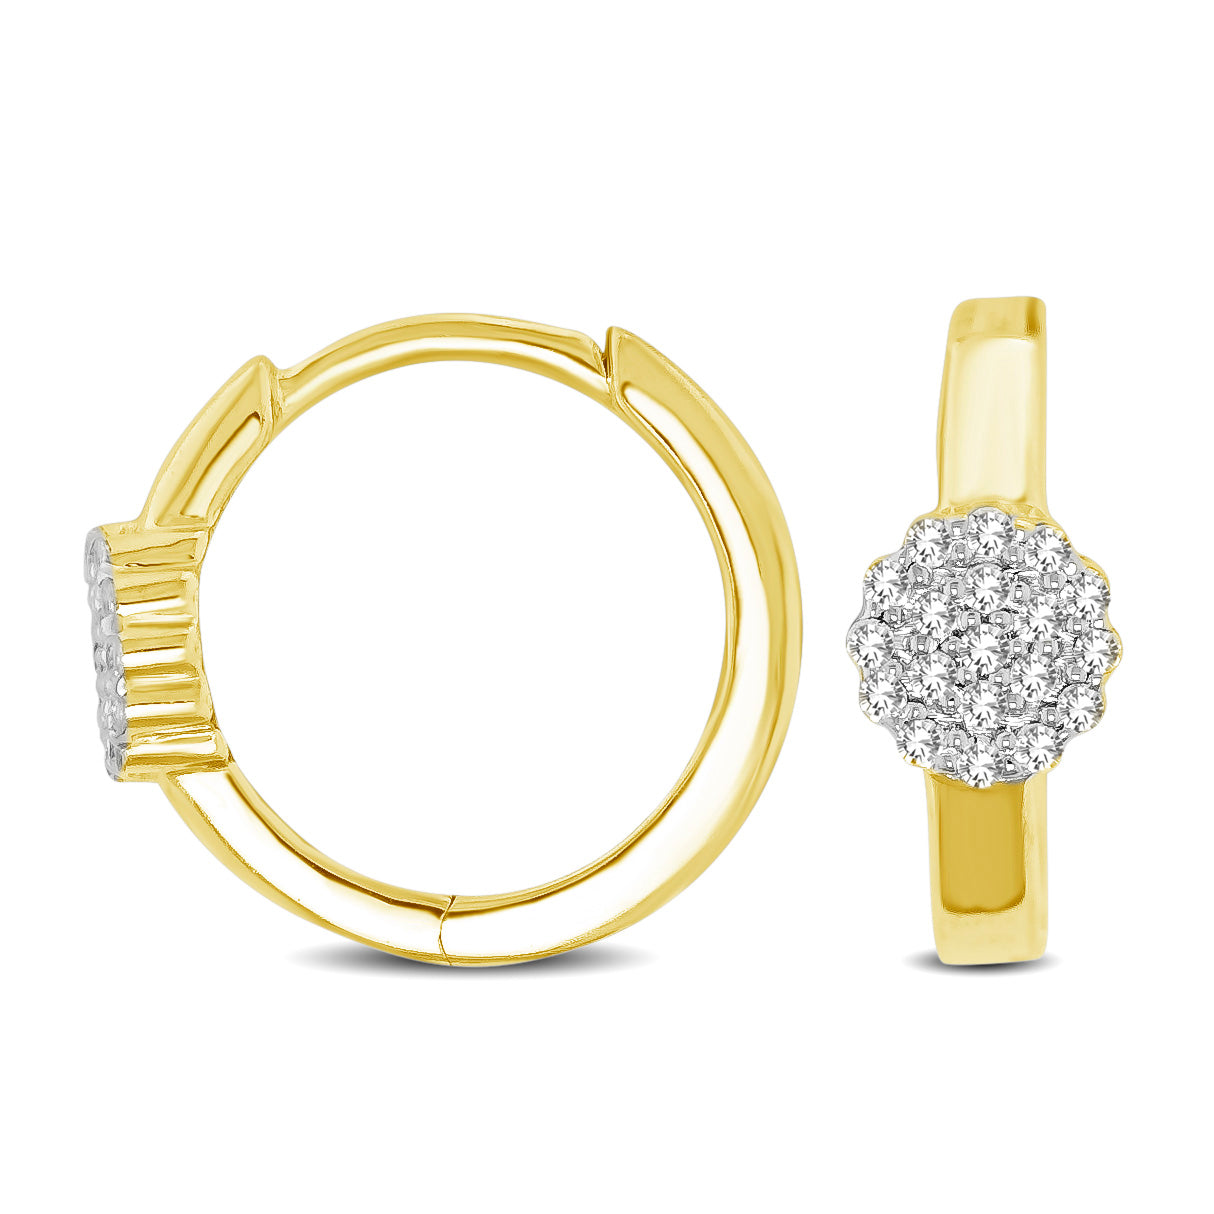 10K Yellow Gold 1/10 Ctw Diamond Hoop Earrings